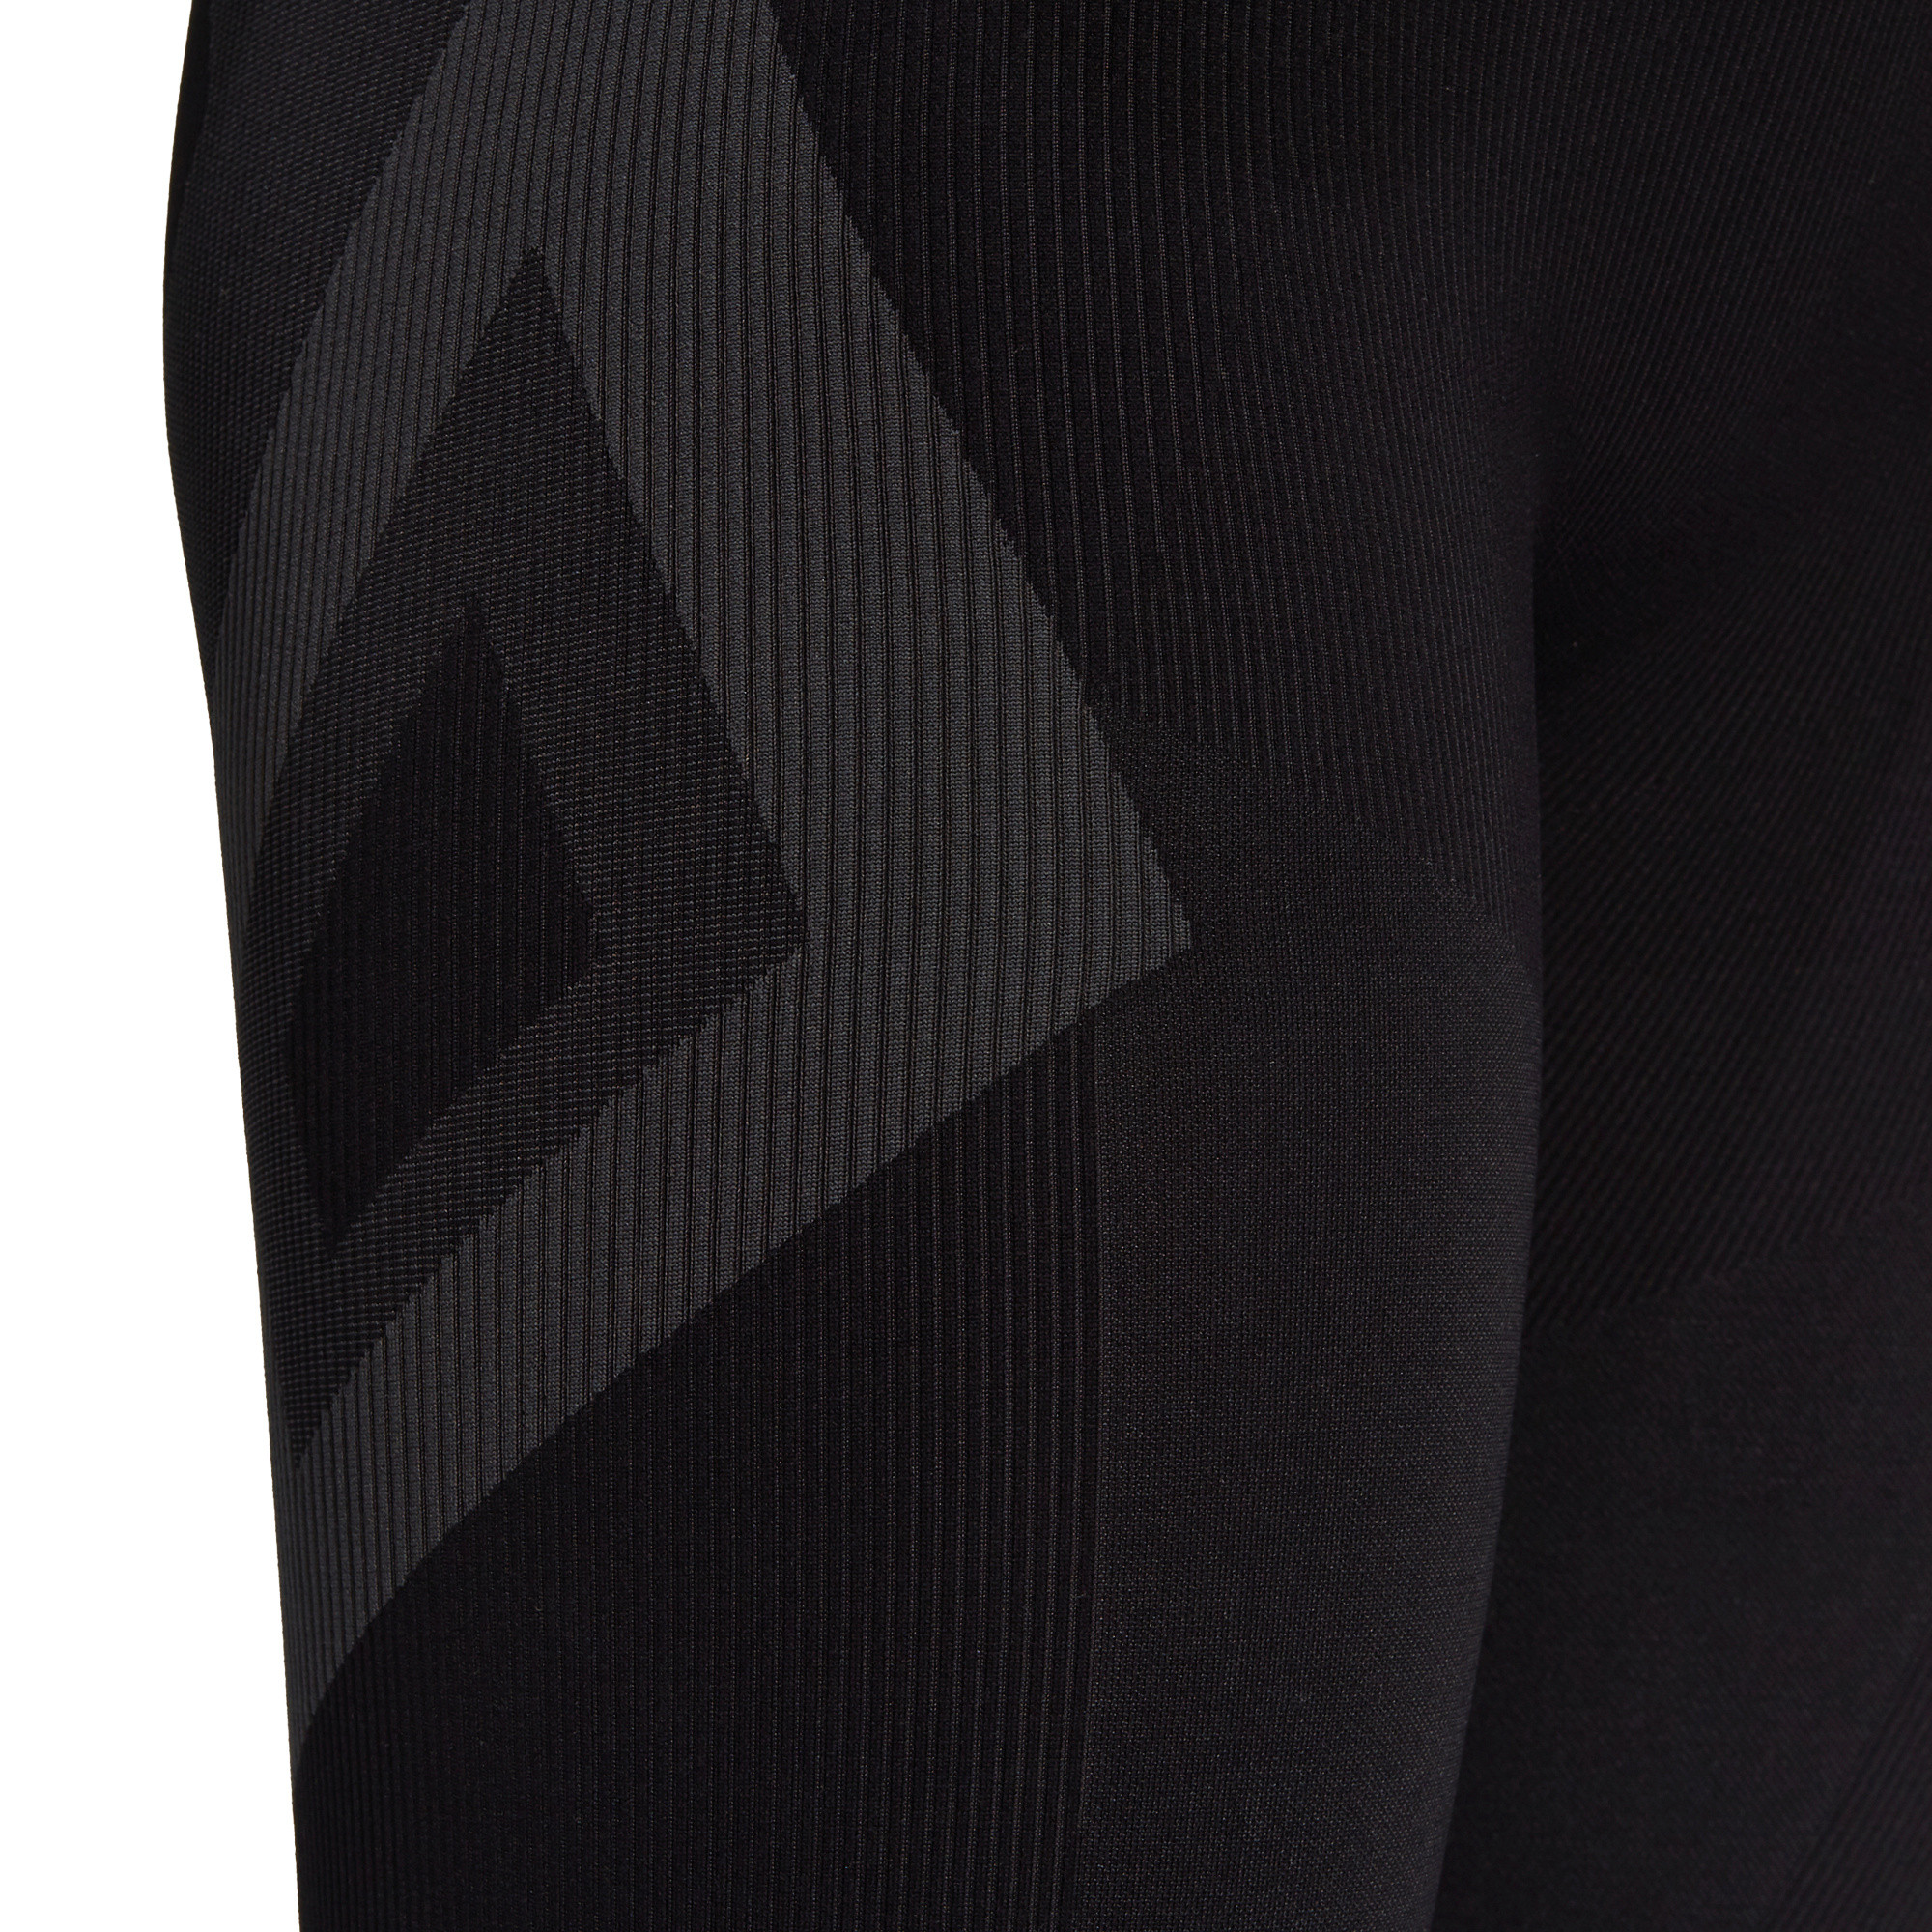 Tight Formotion Sculpt Two-Tone, Nero, large image number 4